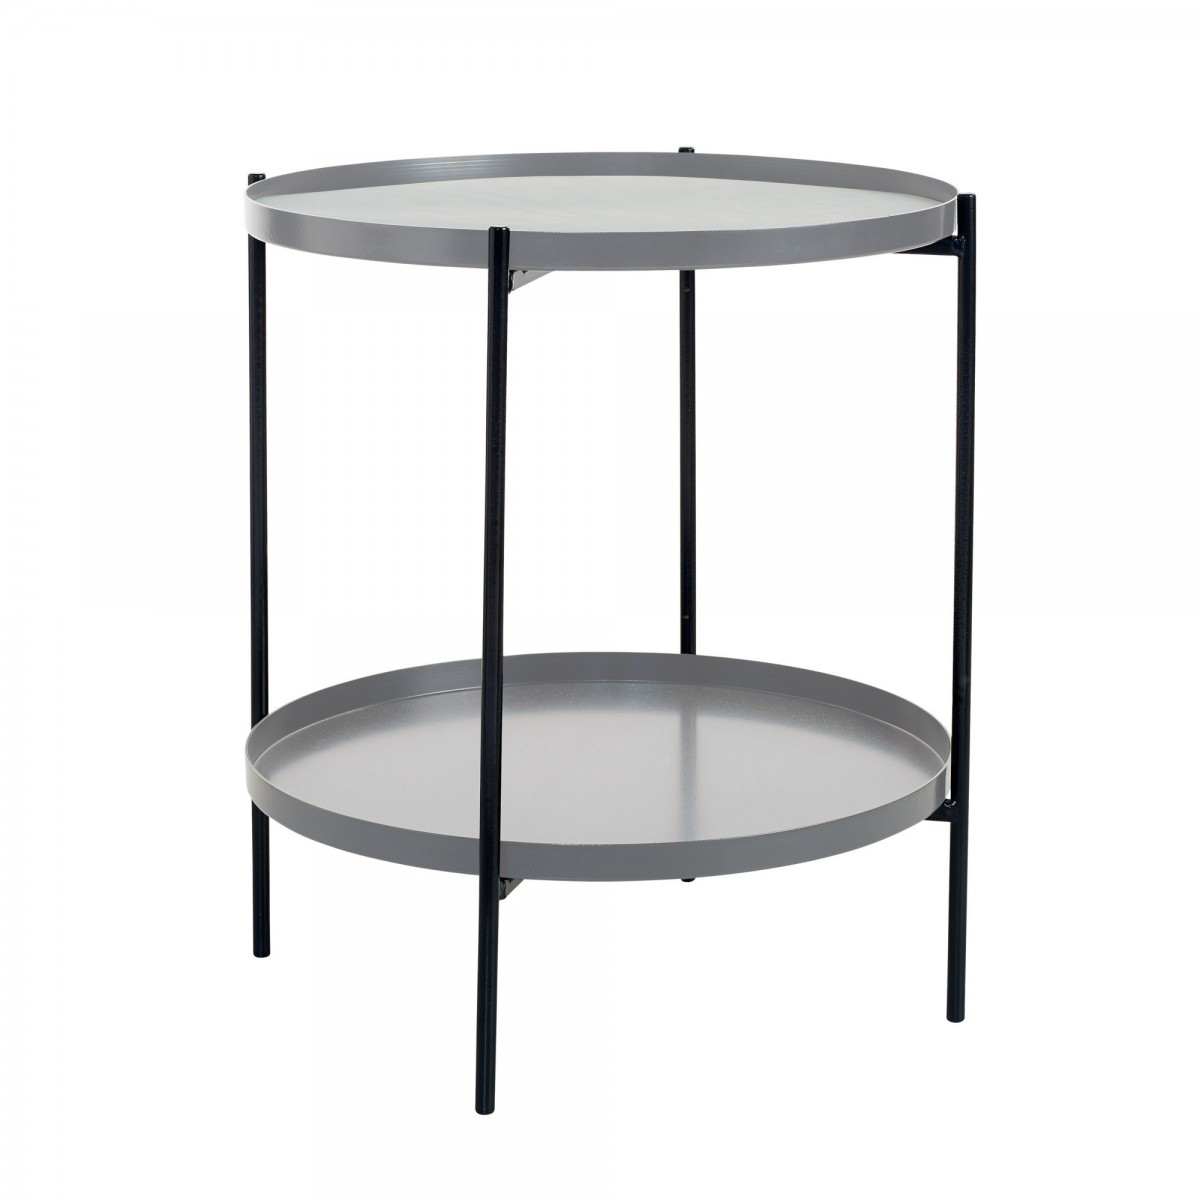 Table d 39 appoint tray s gris bolia for Table d appoint lit